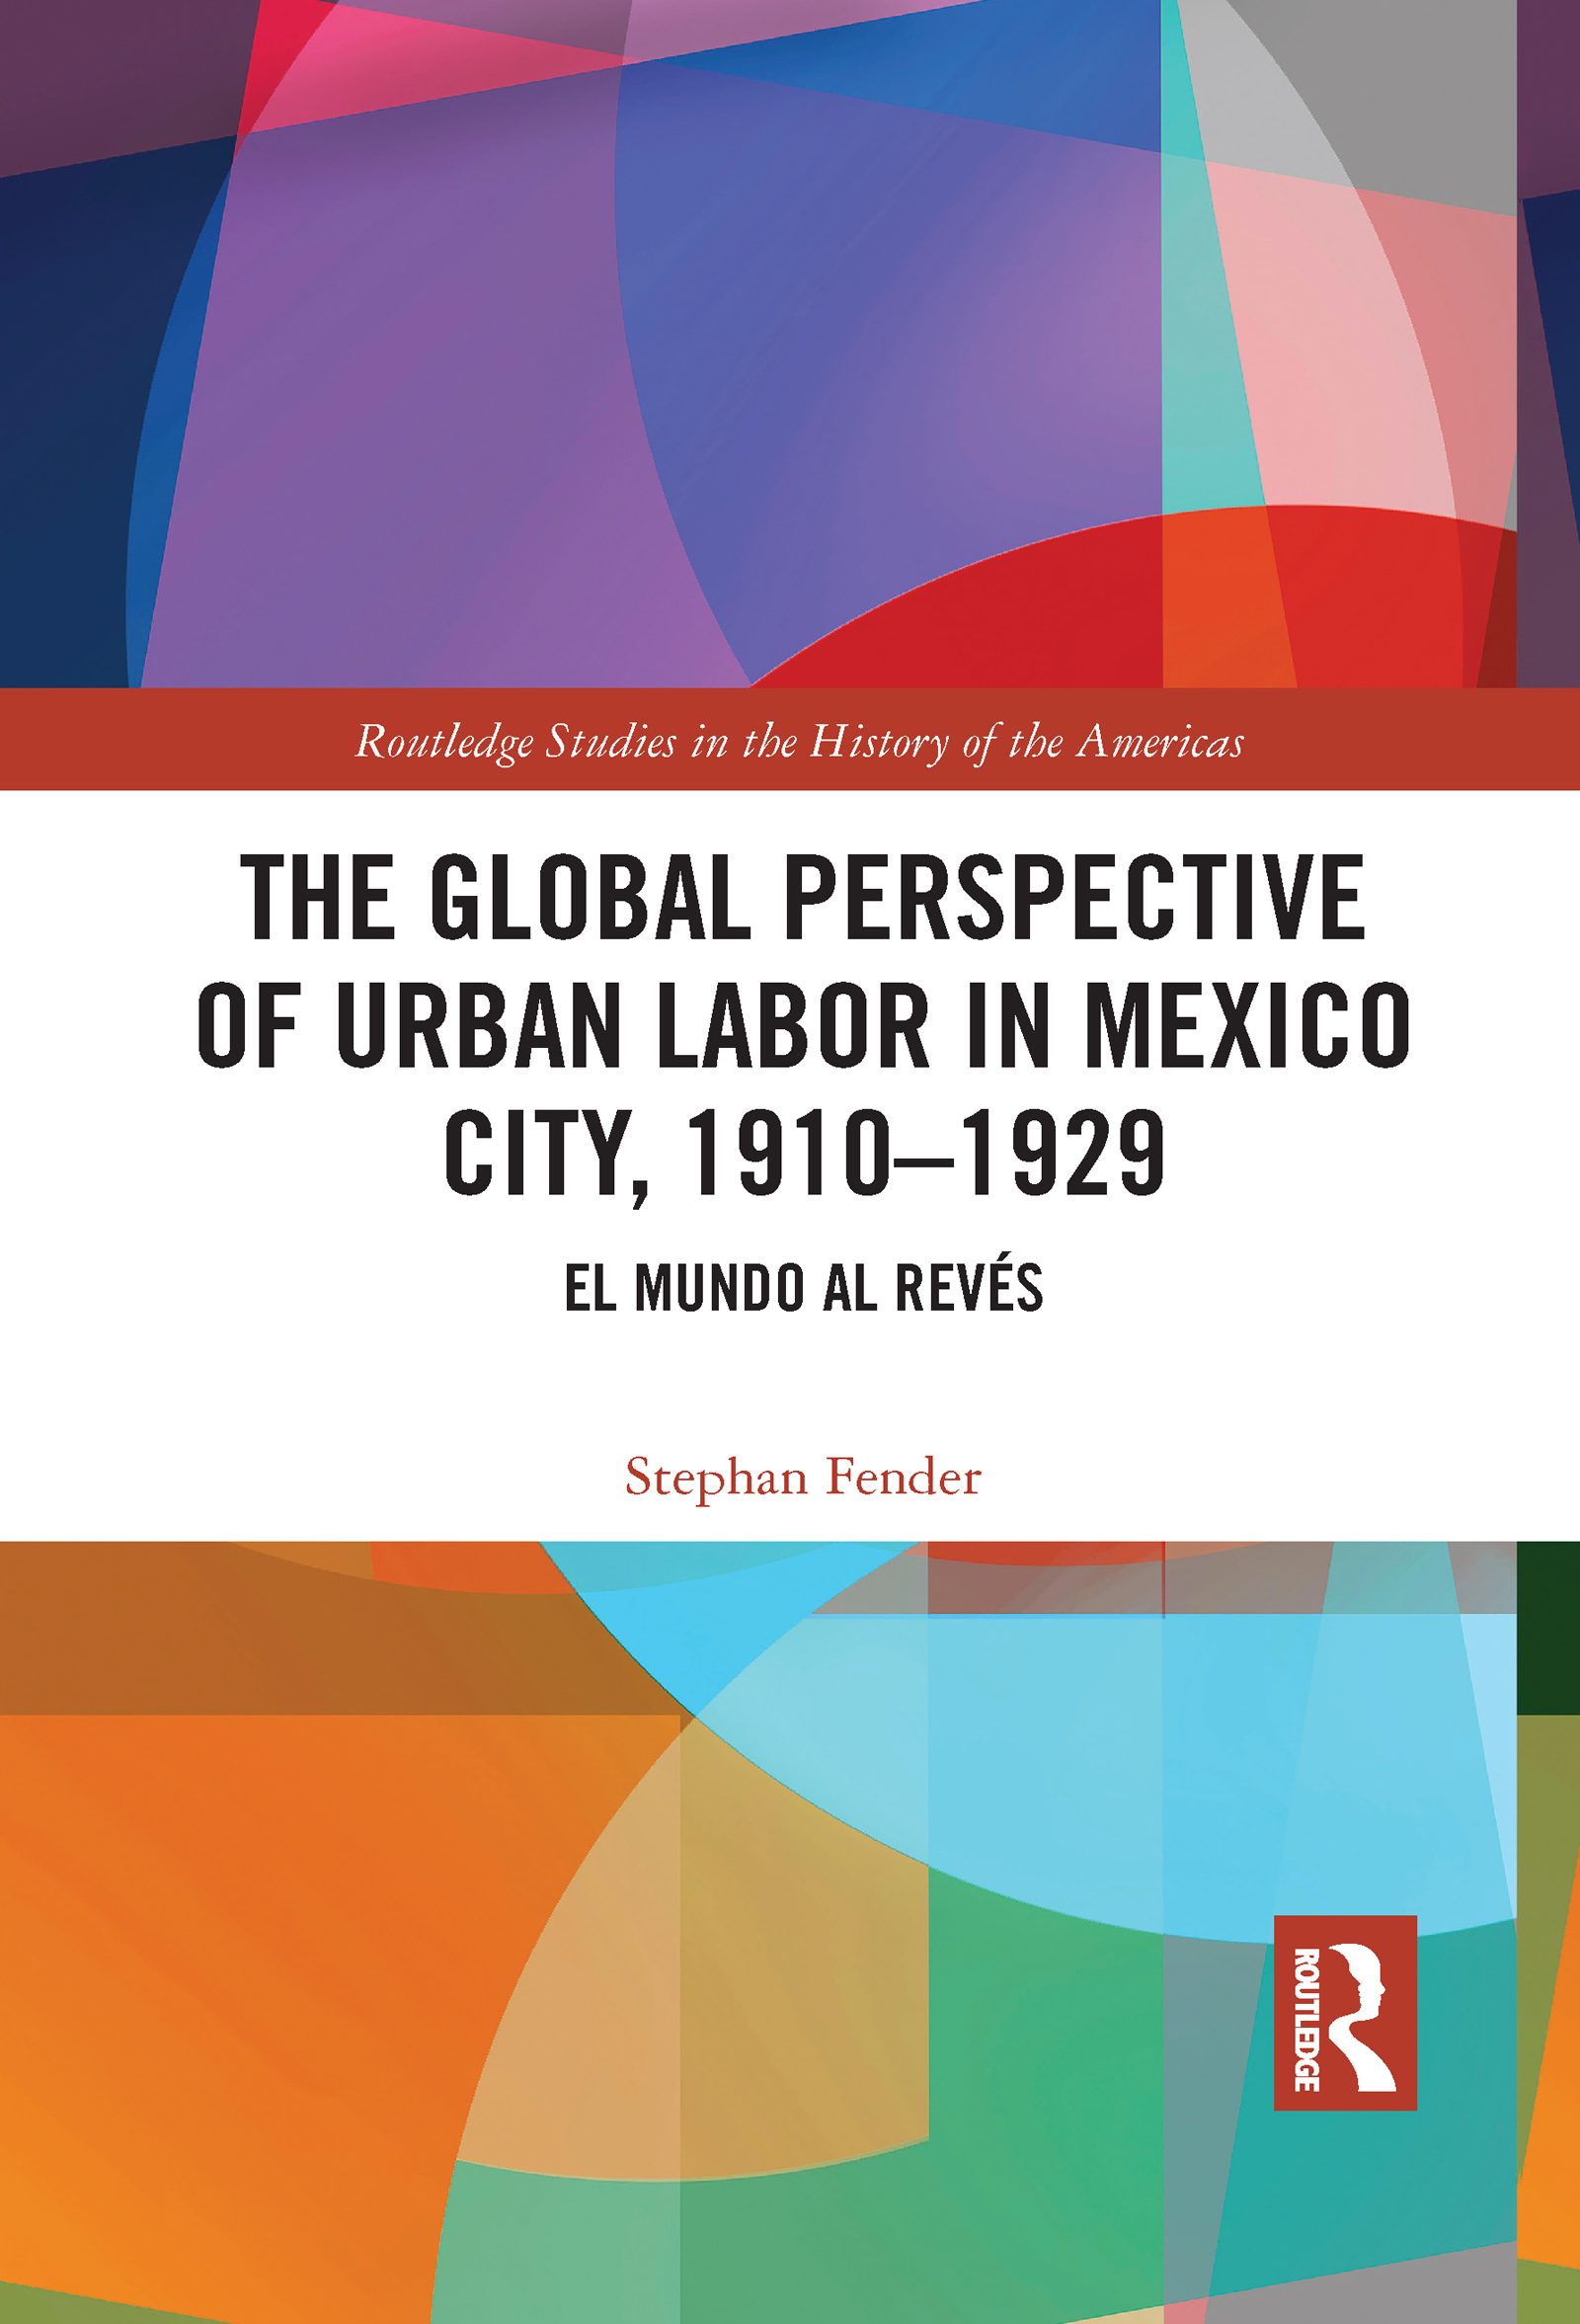 The Global Perspective of Urban Labor in Mexico City, 1910–1929